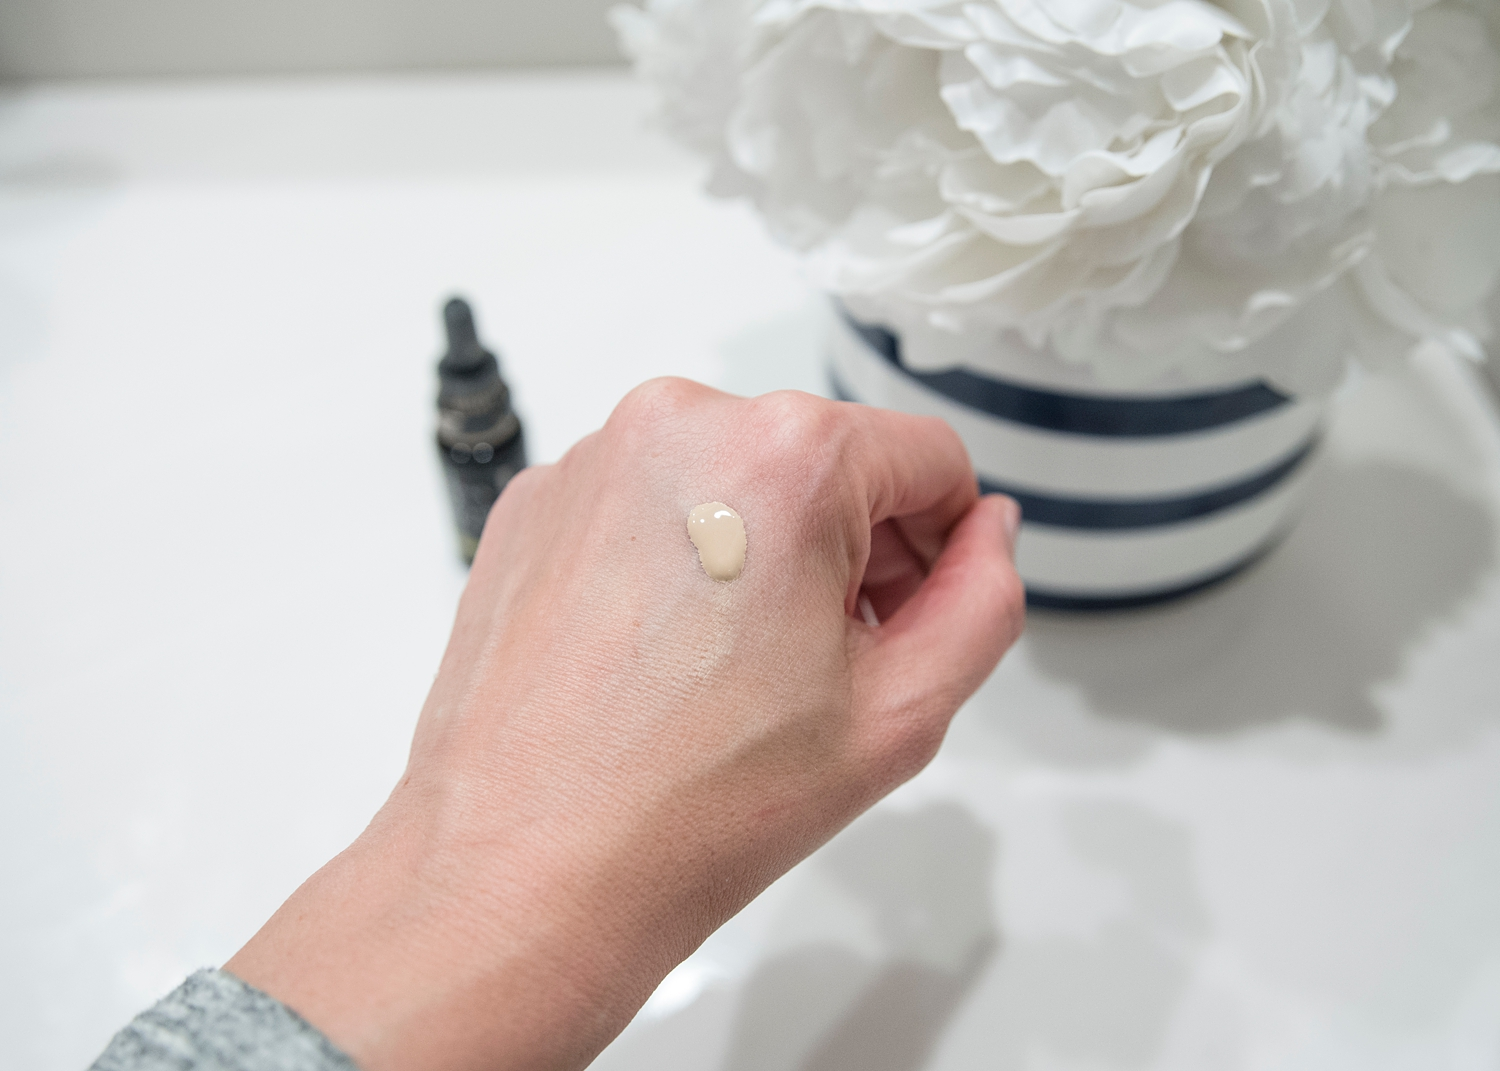 Looking for clean beauty options and you're an over 40 woman? I've got you covered in today's post all about green beauty that also cares for aging skin! Women over 40 should check out Gressa Apothecary--skincare and makeup for aging skin!